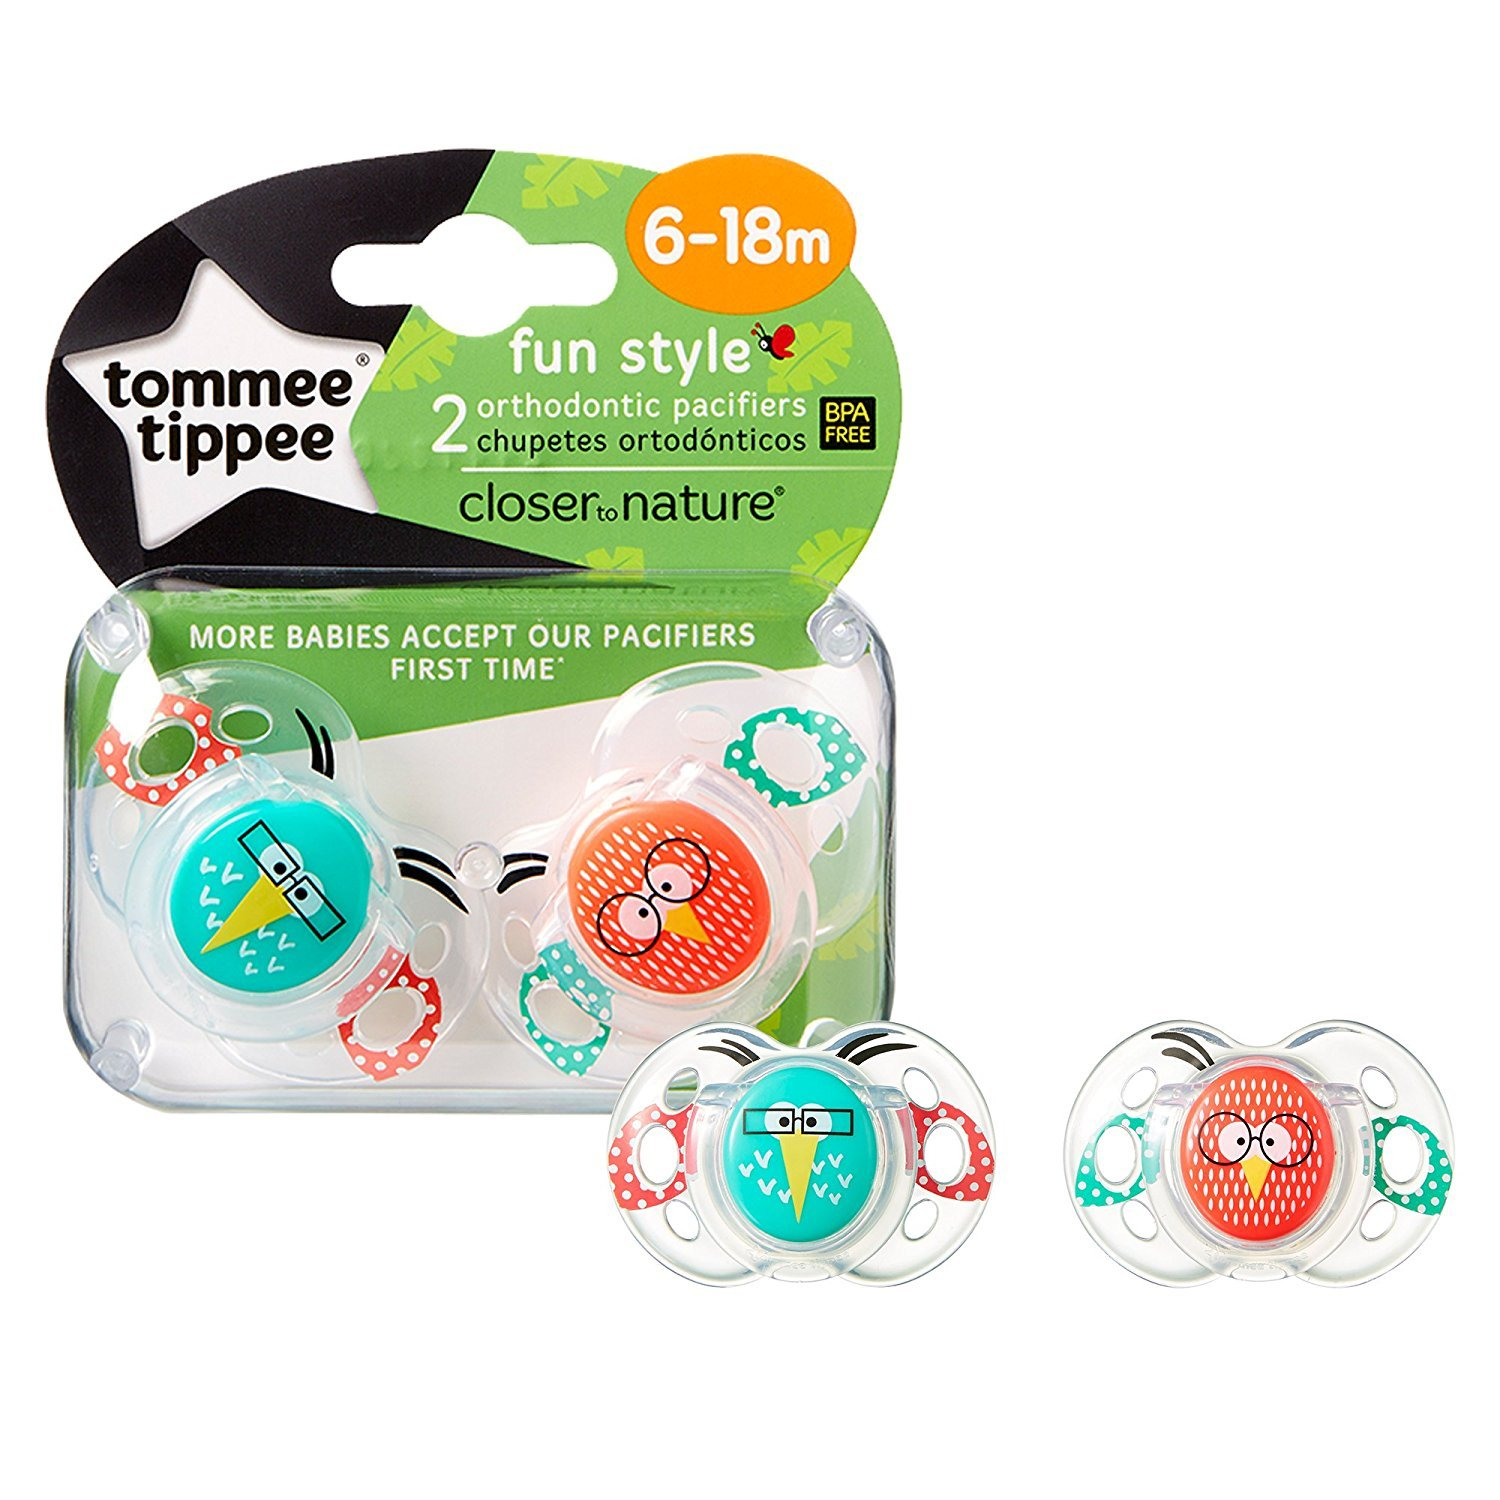 Tommee Tippee Birds Fun style soothers 6-18m 2 in a pack bpa free